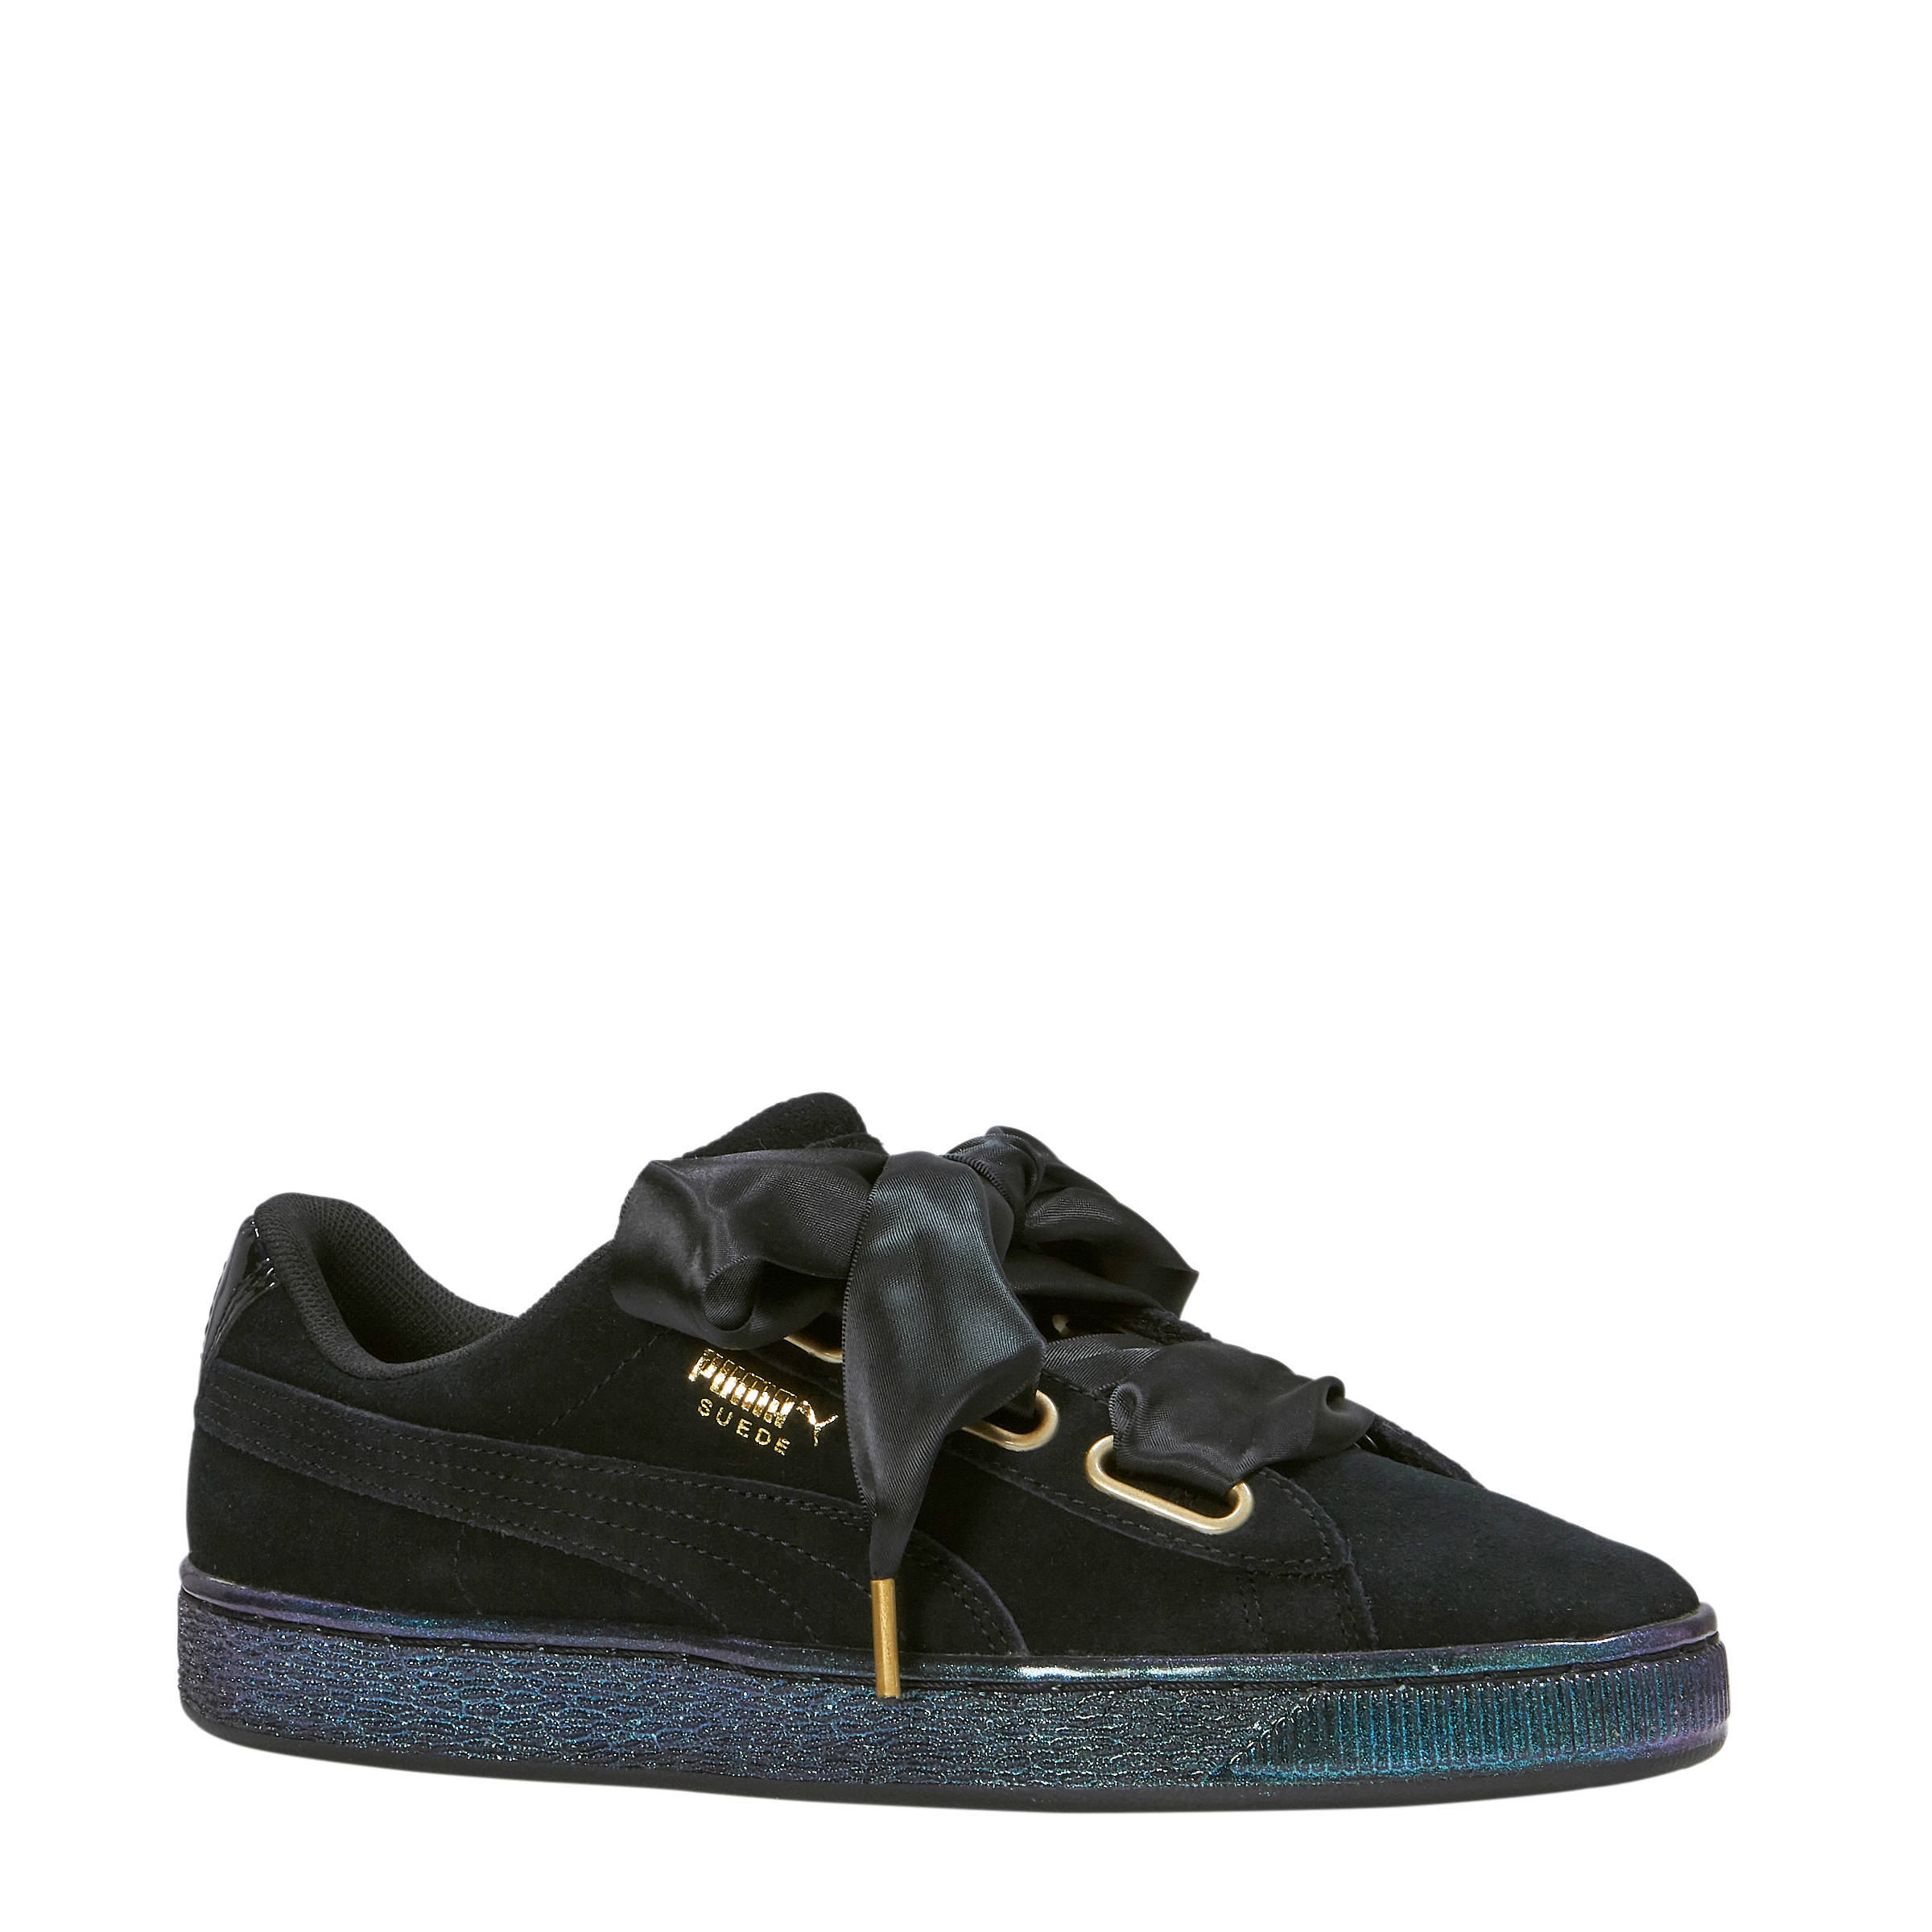 Puma  Suede Heart Satin Wn's sneakers